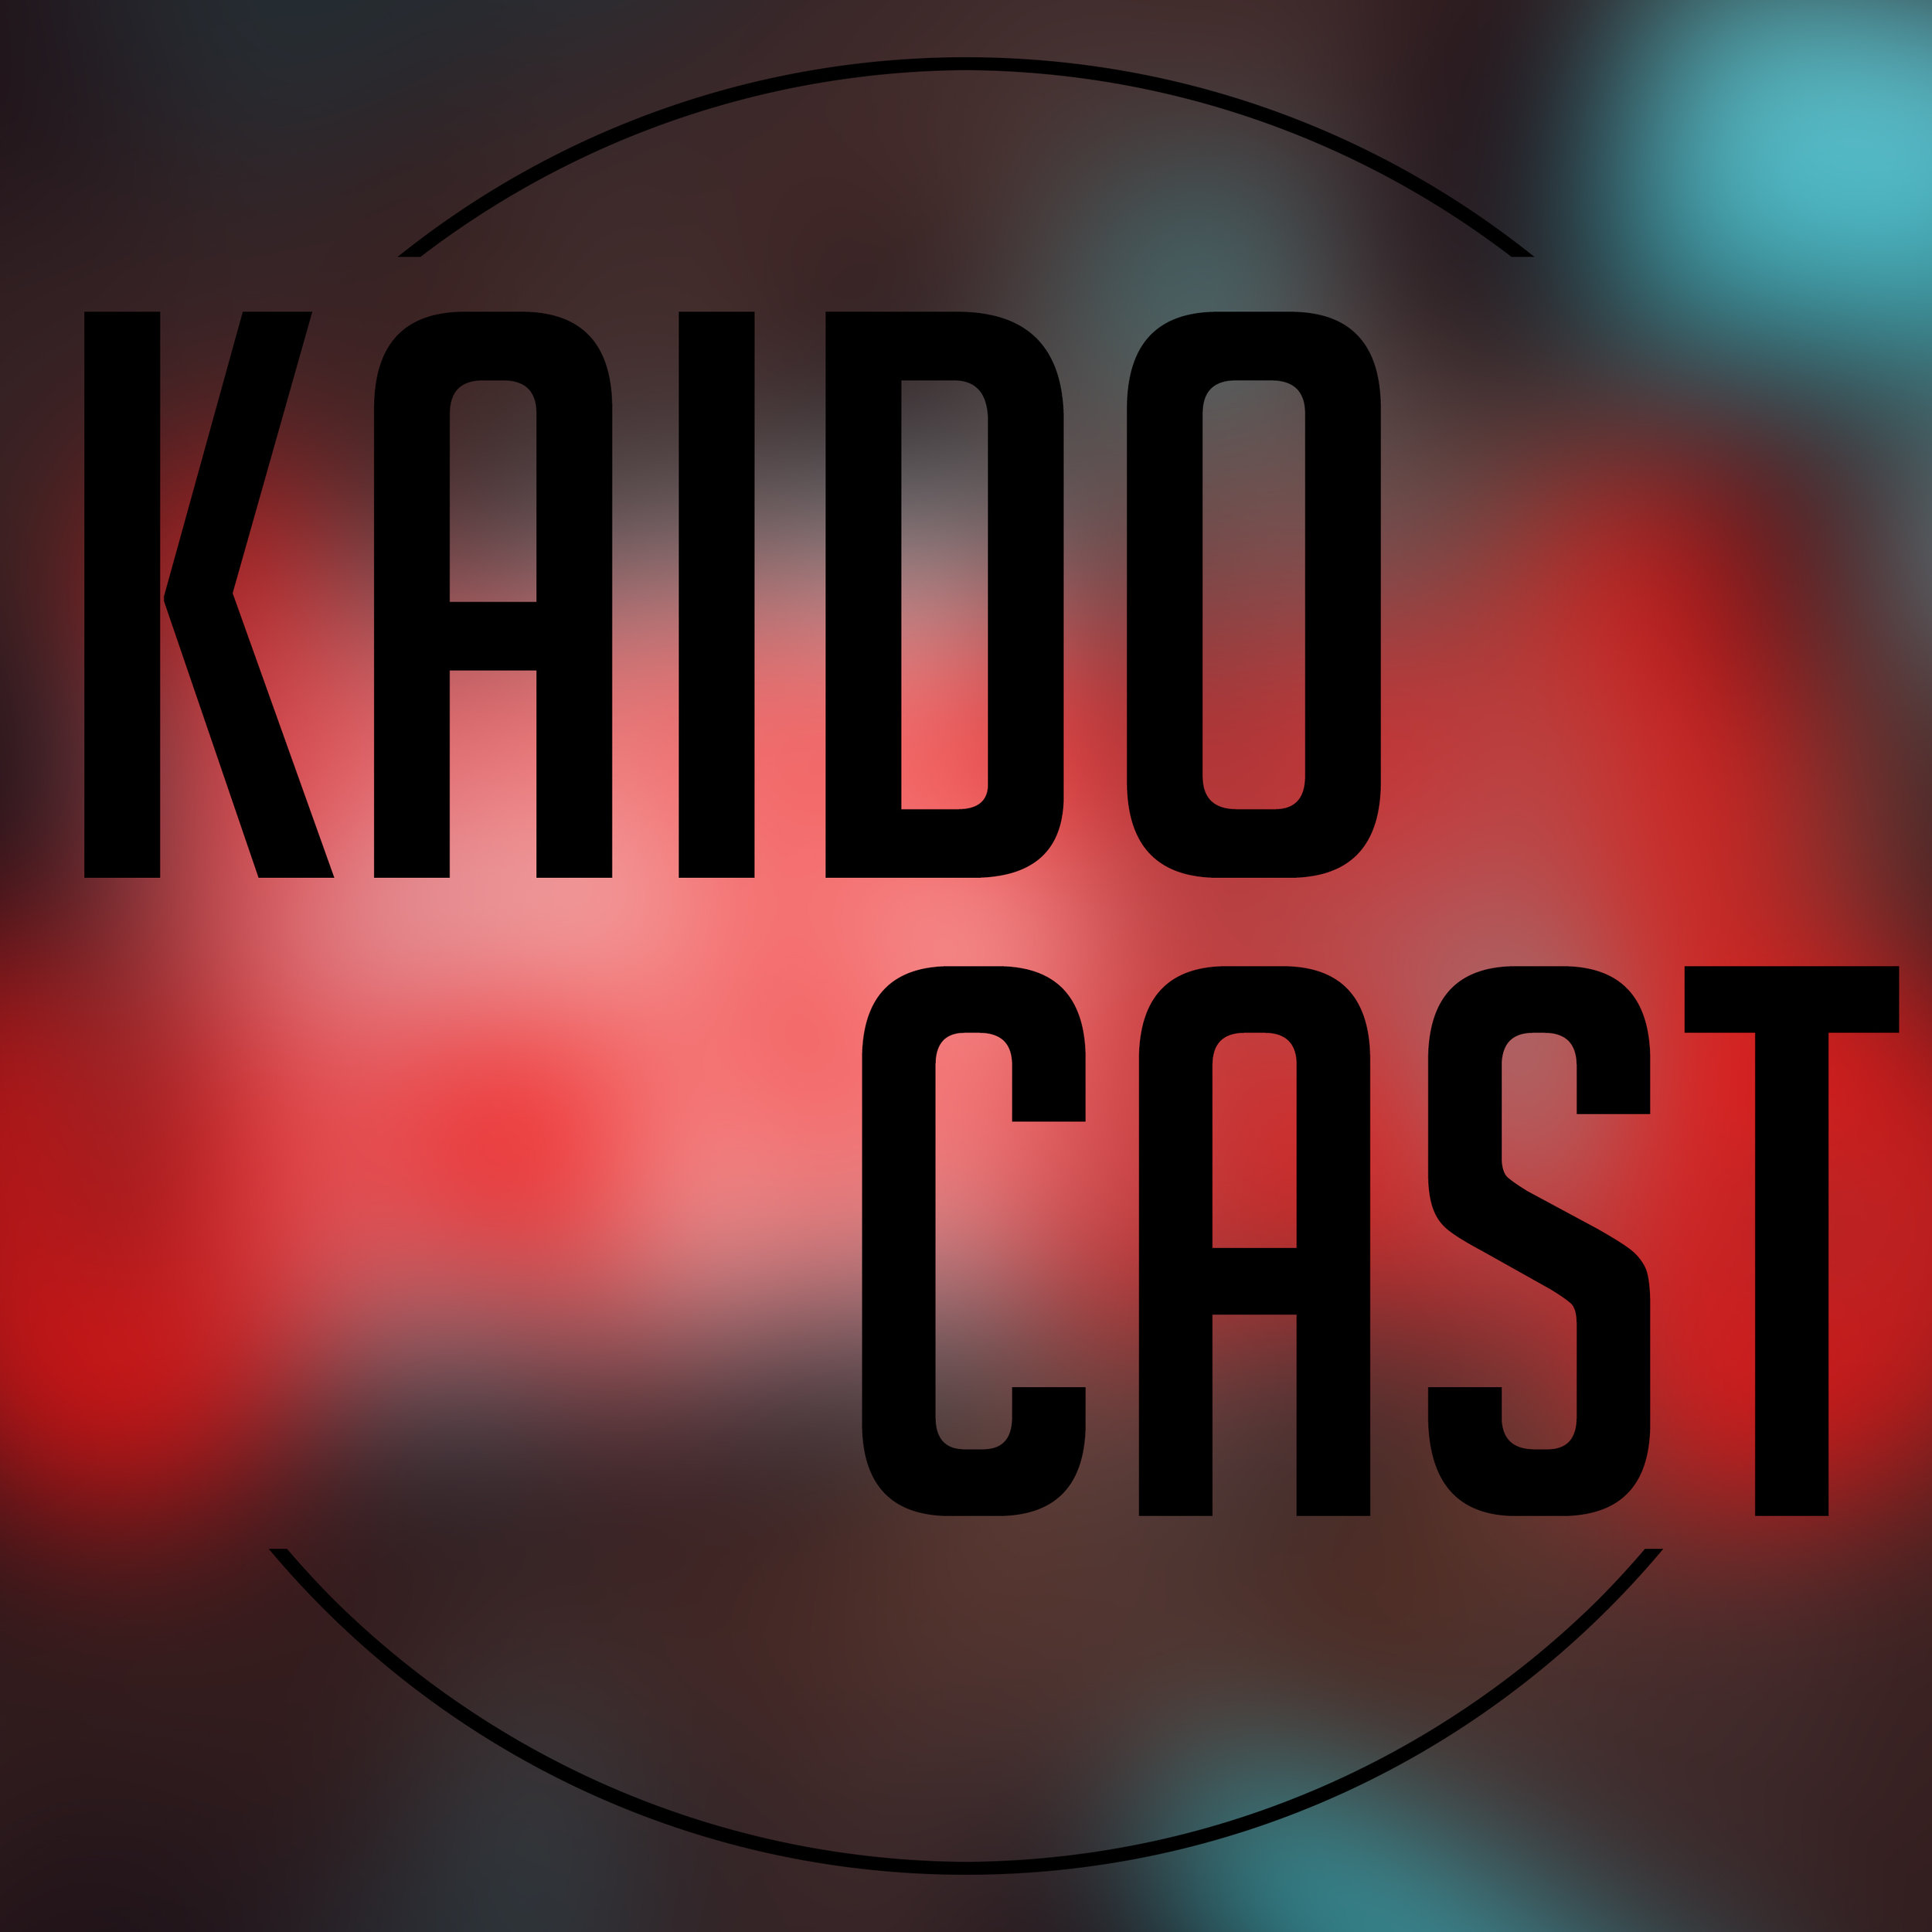 KAIDO Cast 04 - A Taste That Stays With You for Hours - This week America Dave stops in for a visit, Luke smelled the chicken dinner, Zac questions our ability to have flying cars.